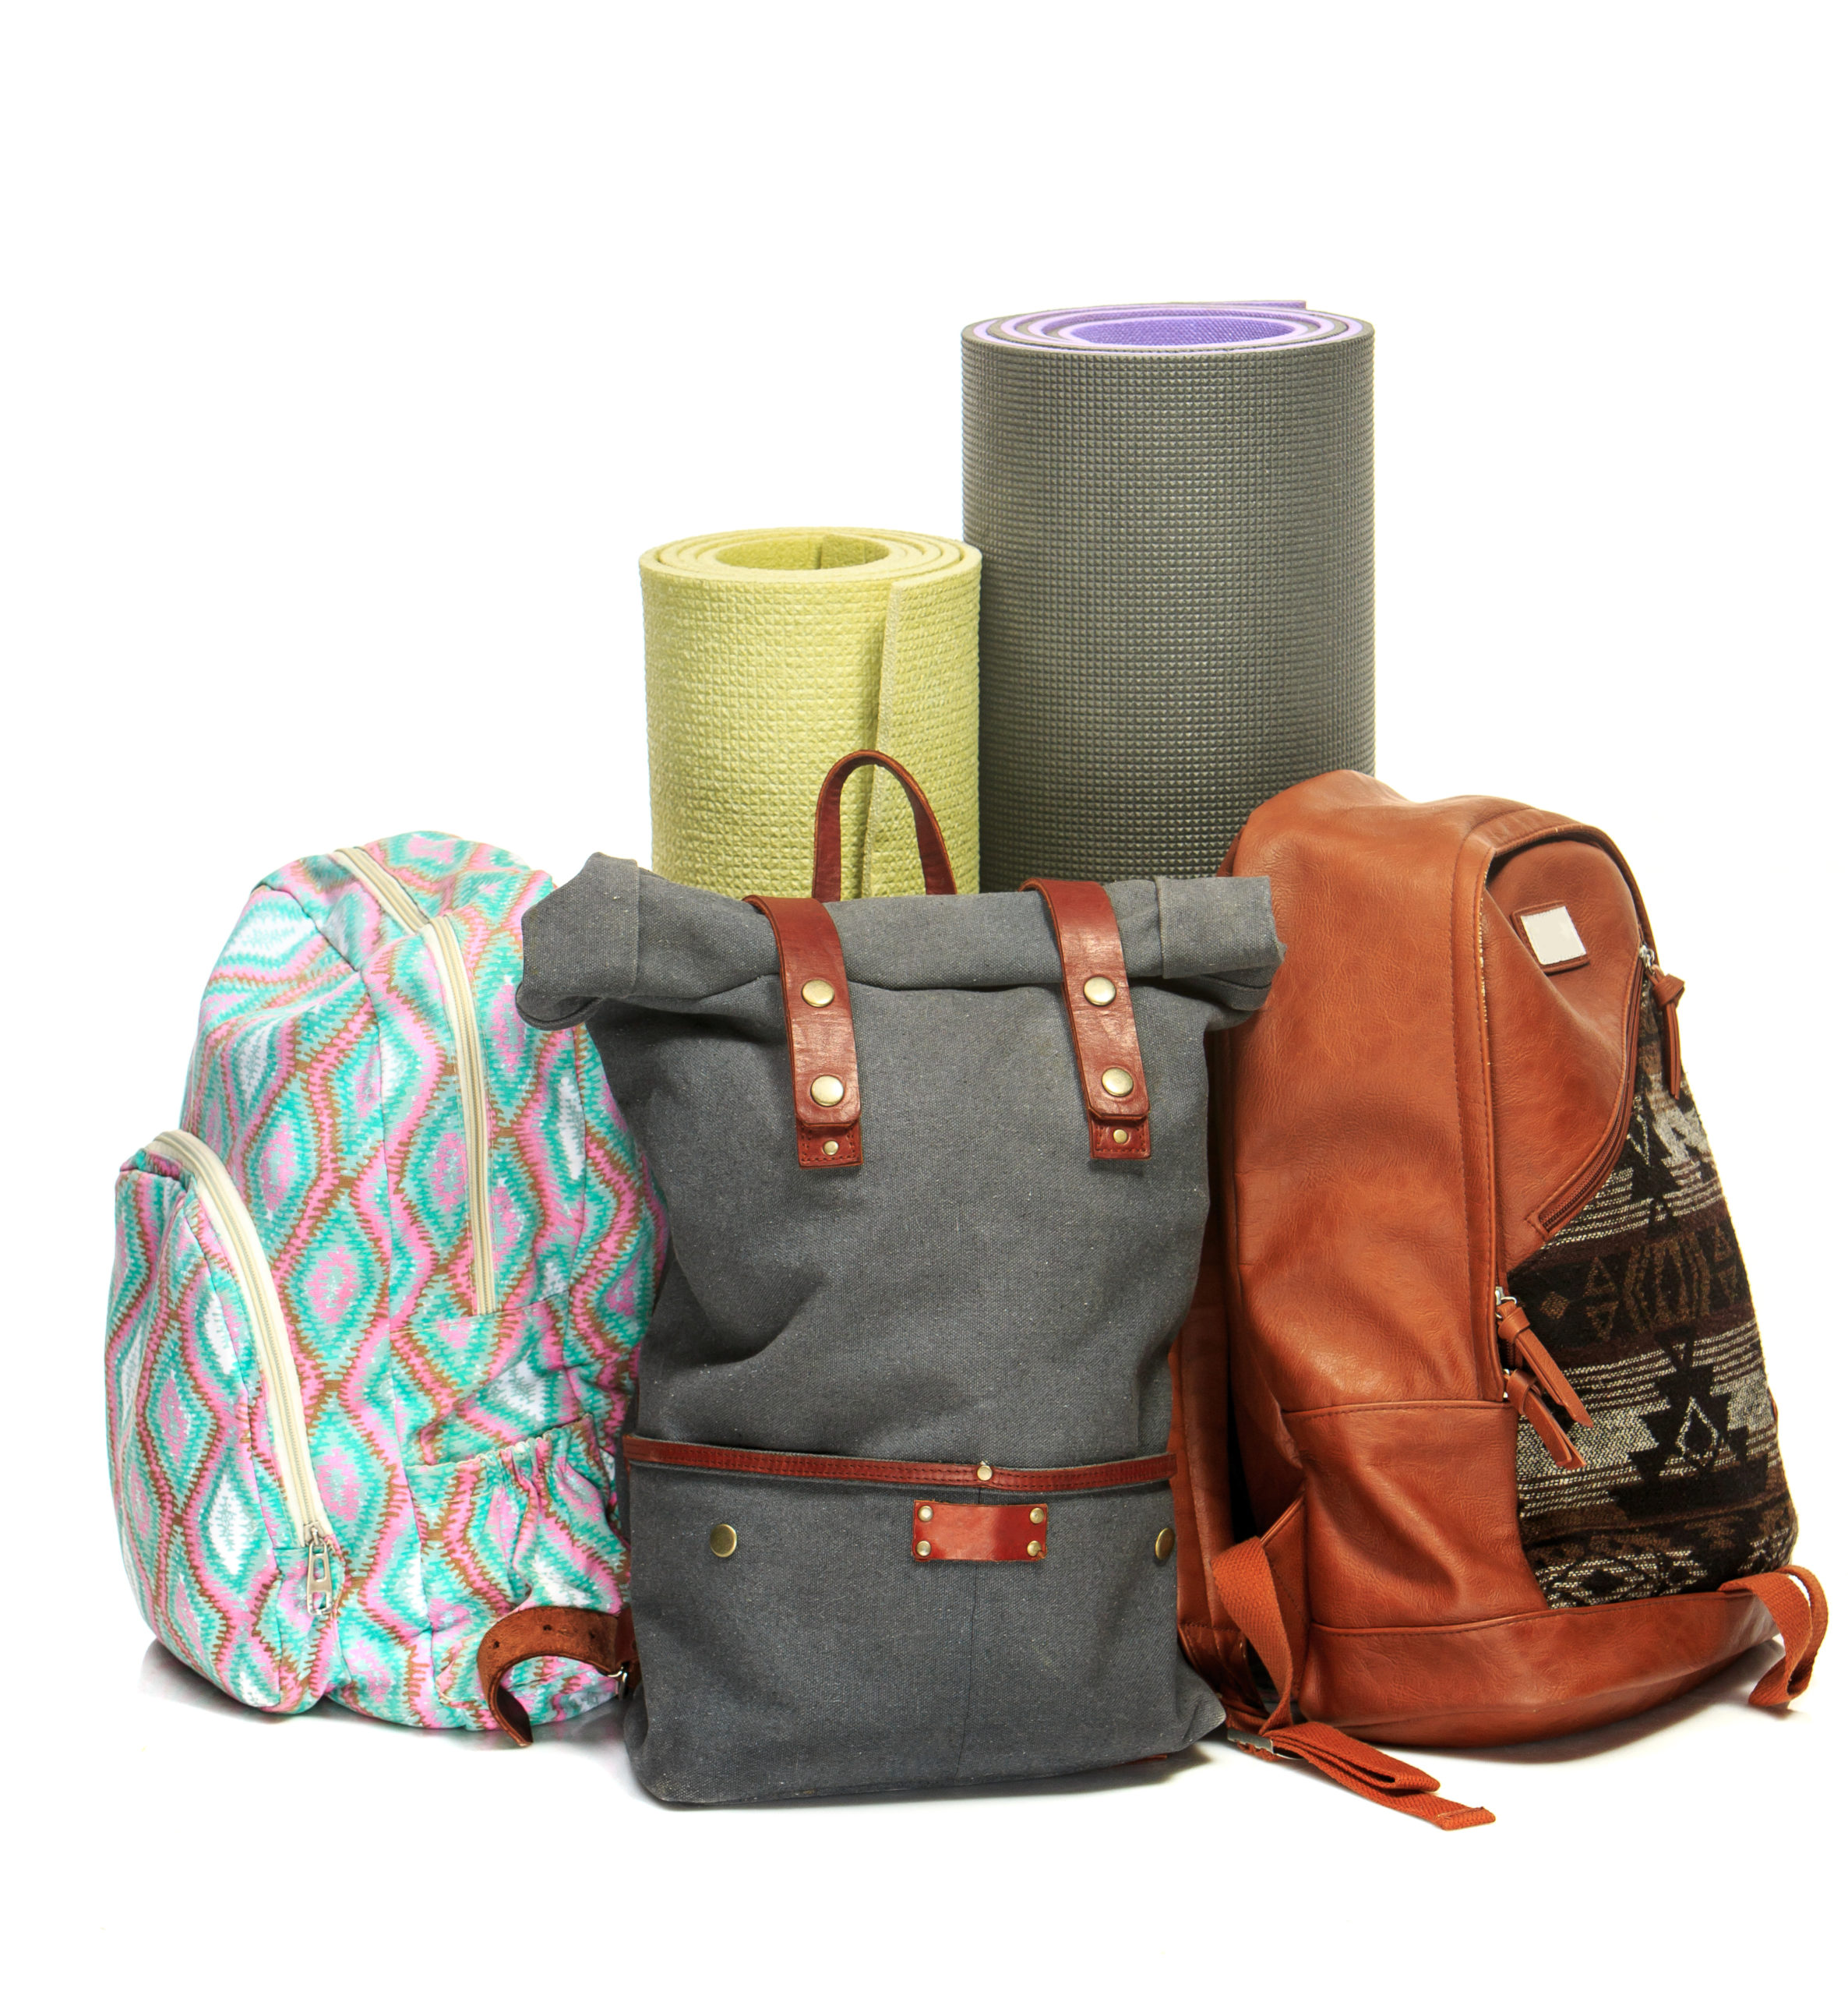 Tour Backpack Essentials: If You Are Planning Adventure